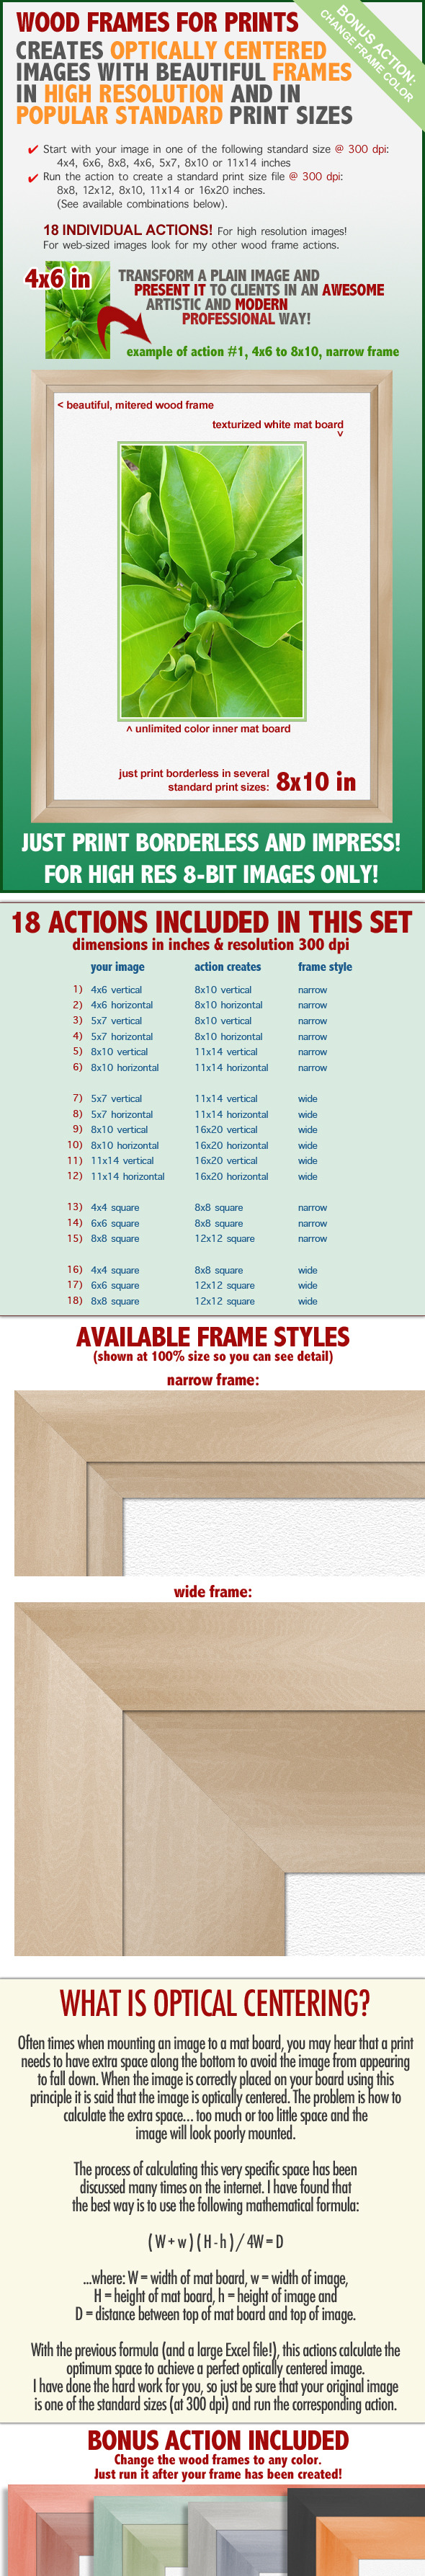 Wood Frame for Prints Action Set - Actions Photoshop